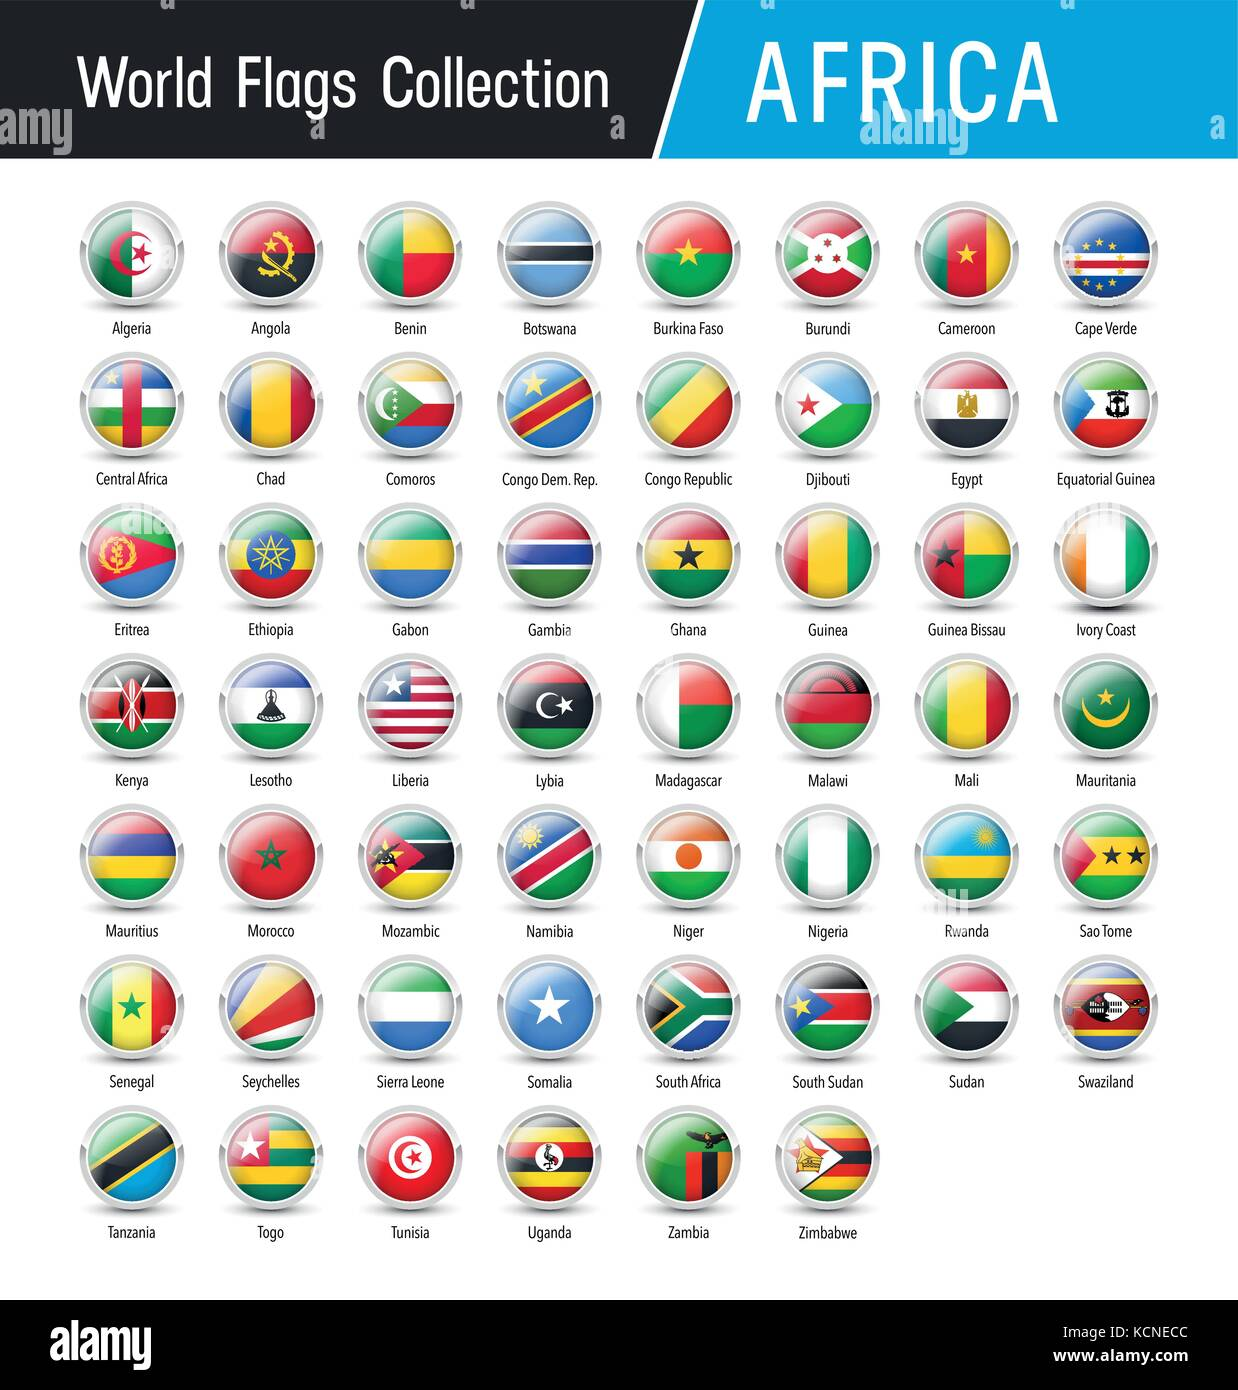 Flags of Africa, inside round icons - Vector world flags collection - Stock Image